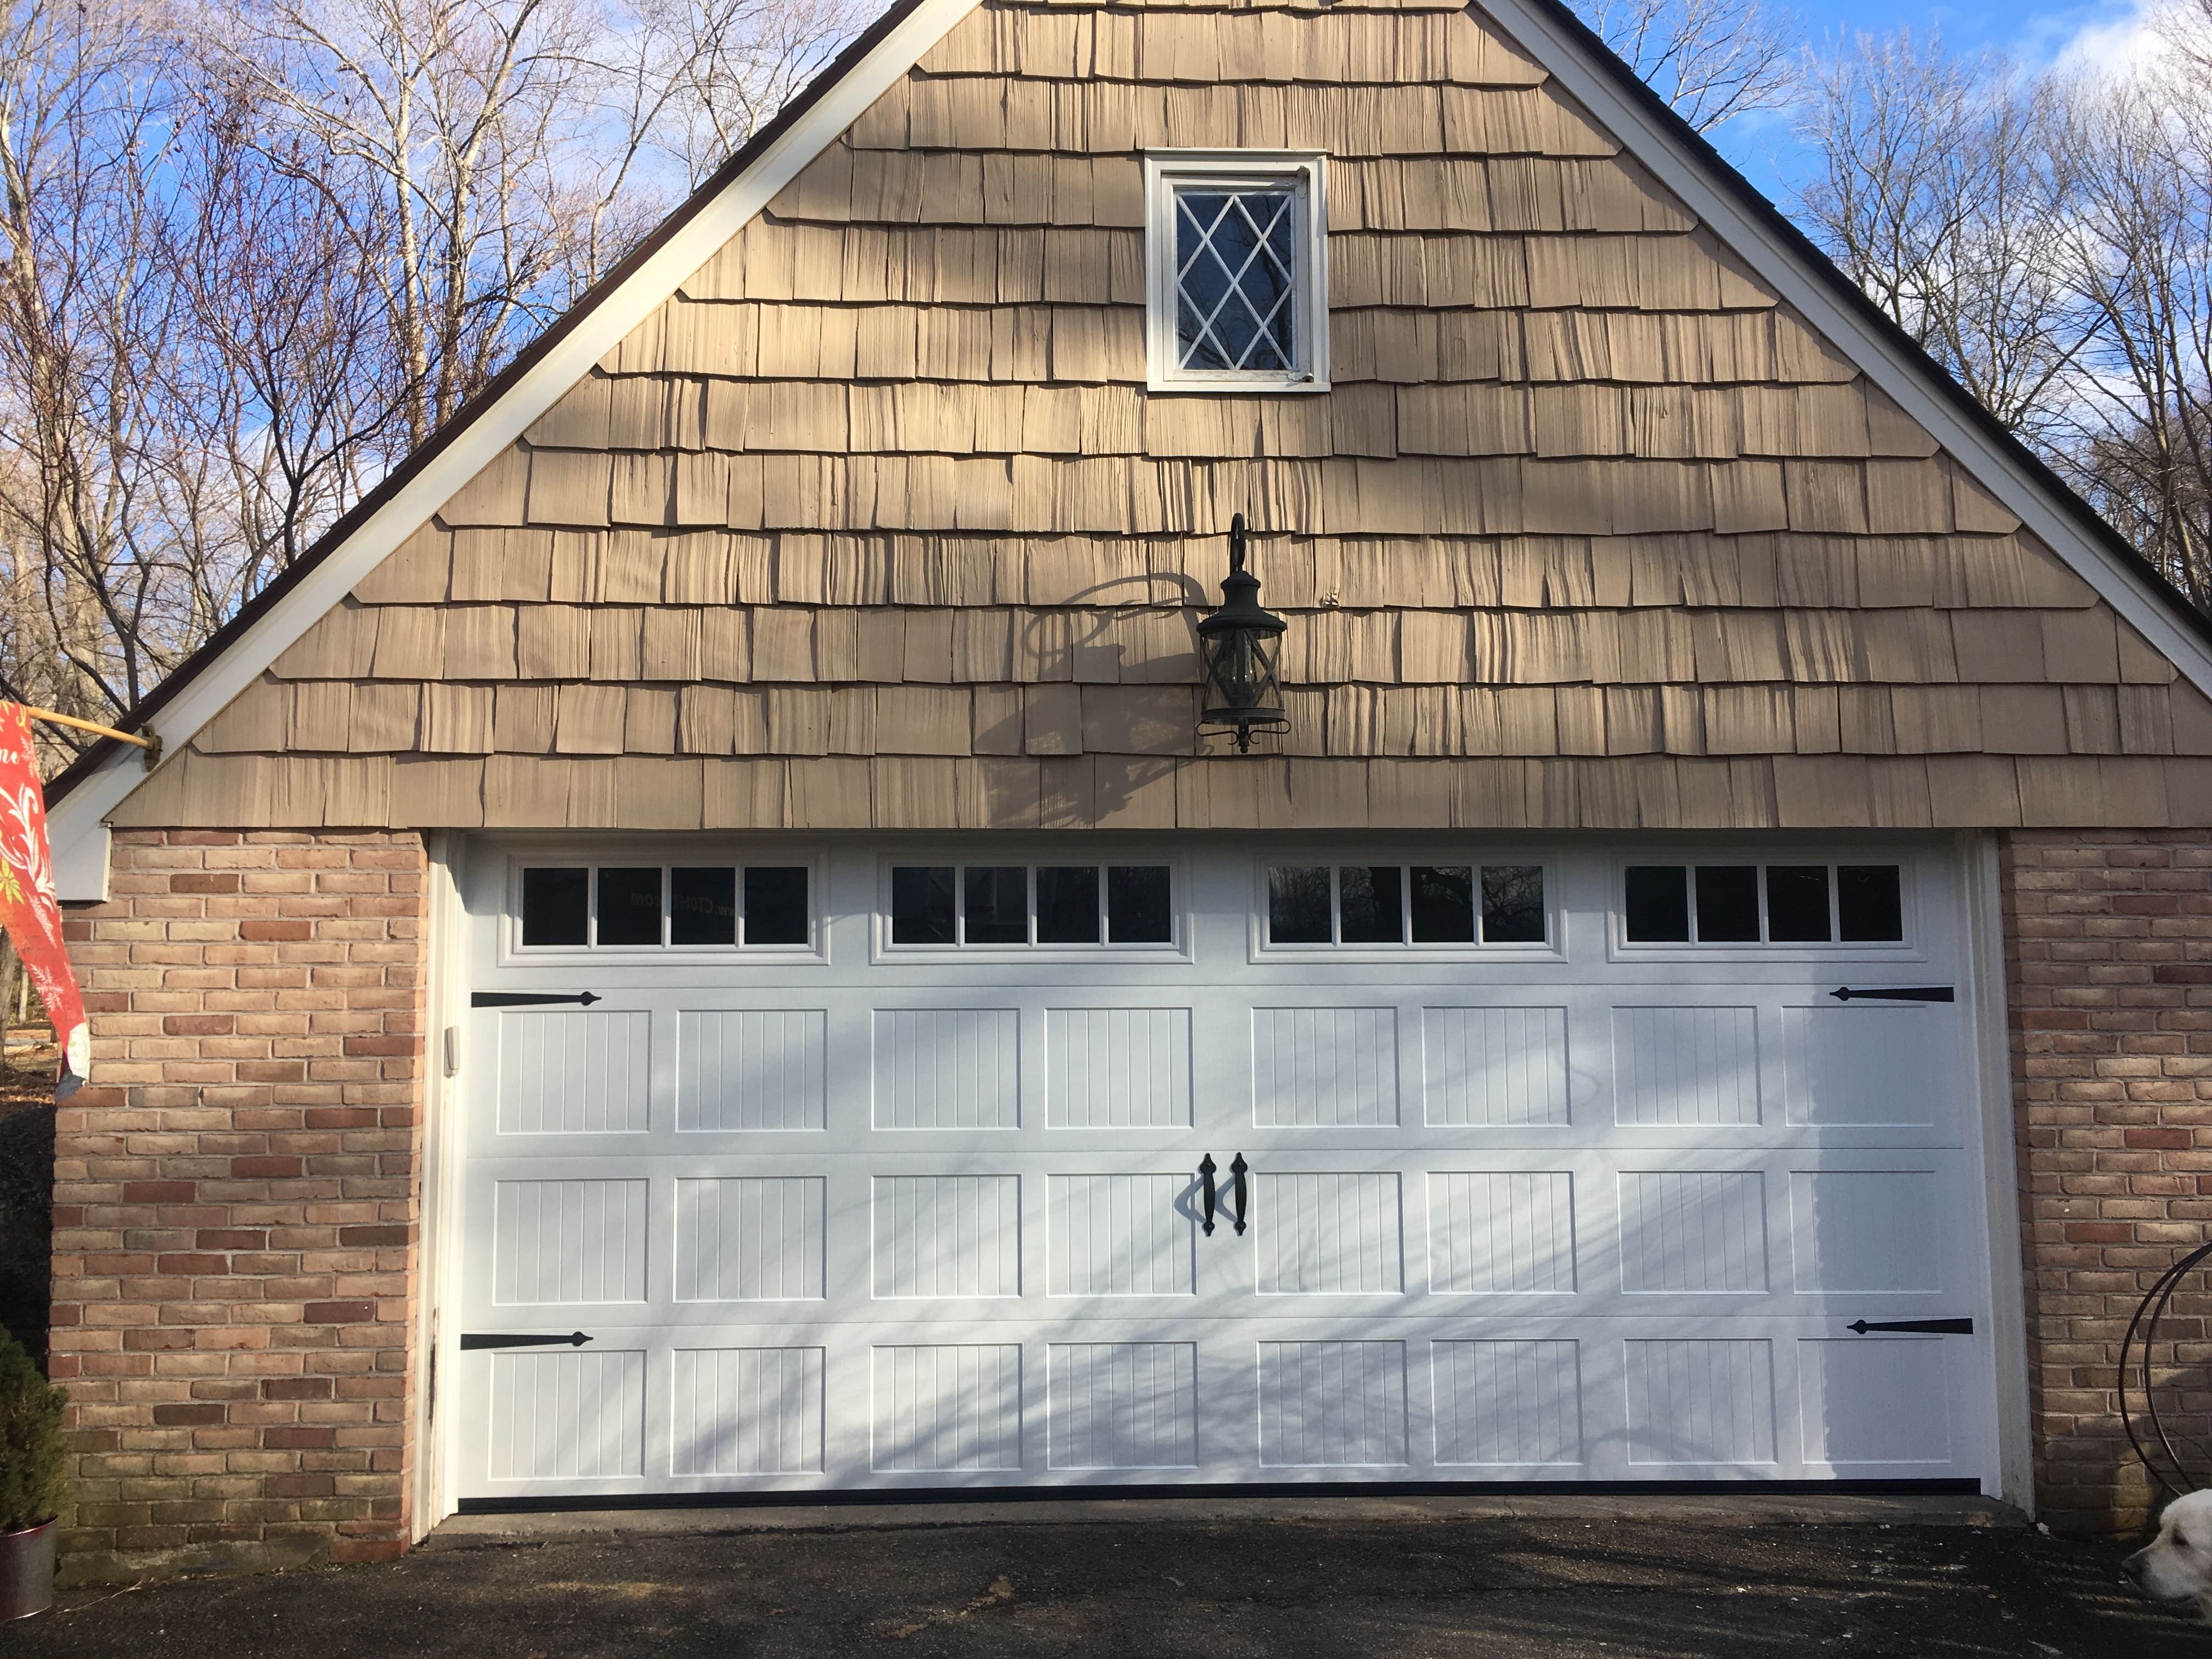 roll ideas door lofted garage looking building storage doors style design premier x white barn good dimensions within o astounding up